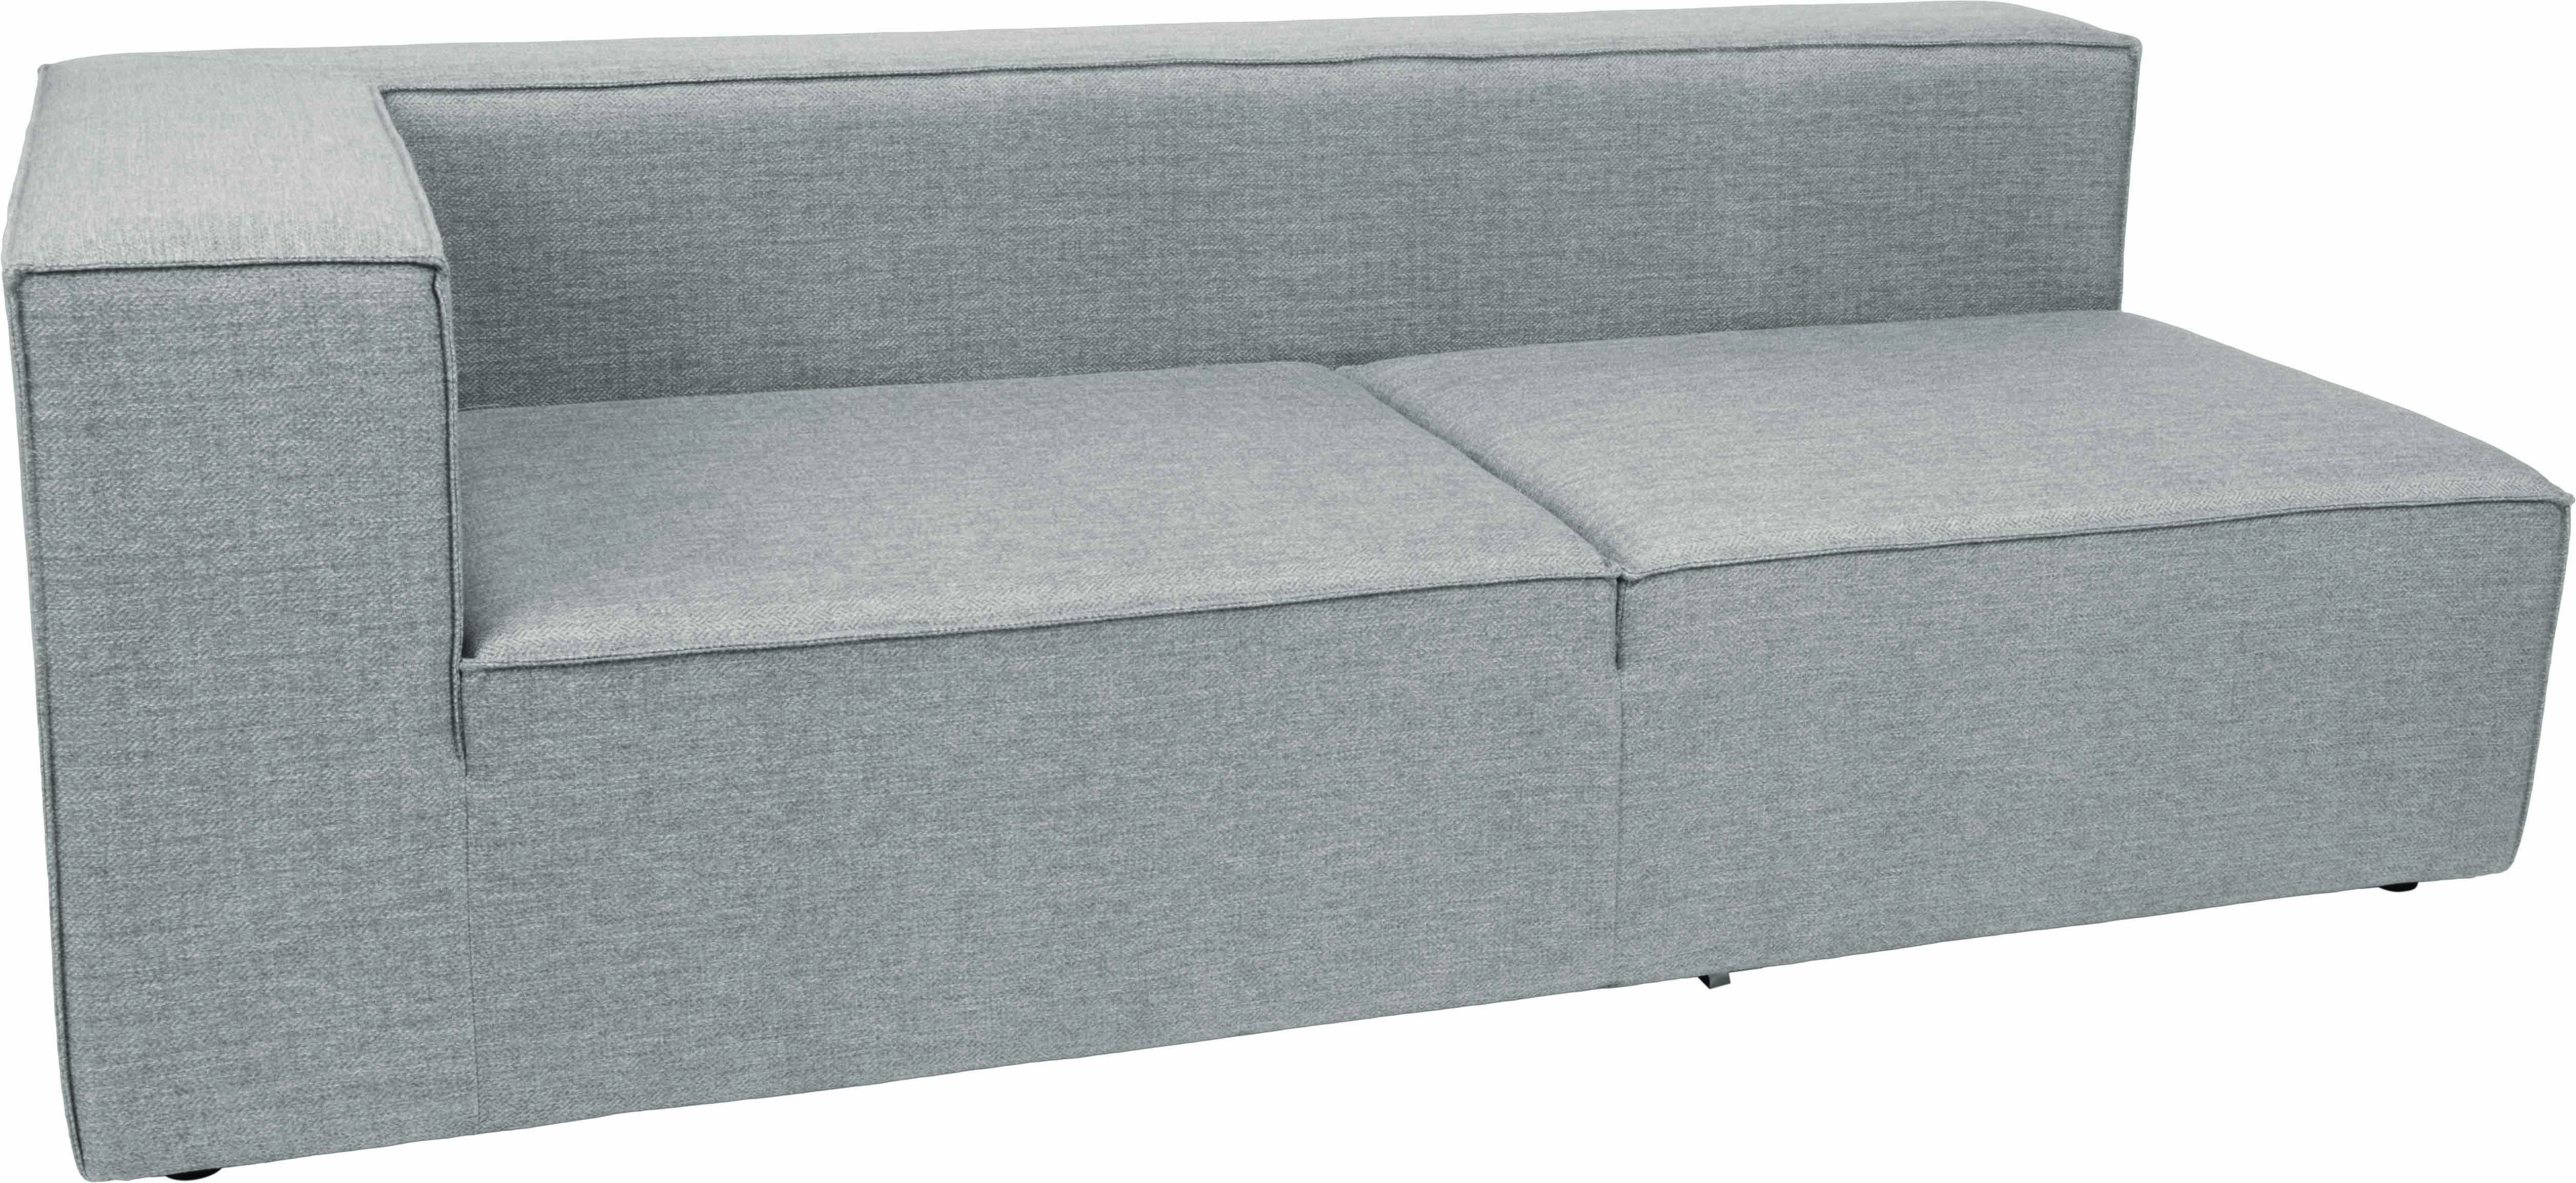 Adele Sectional Right Arm Modular Sofa Transitional Contemporary Modern  Grey Outdoor European Fabric Herringbone